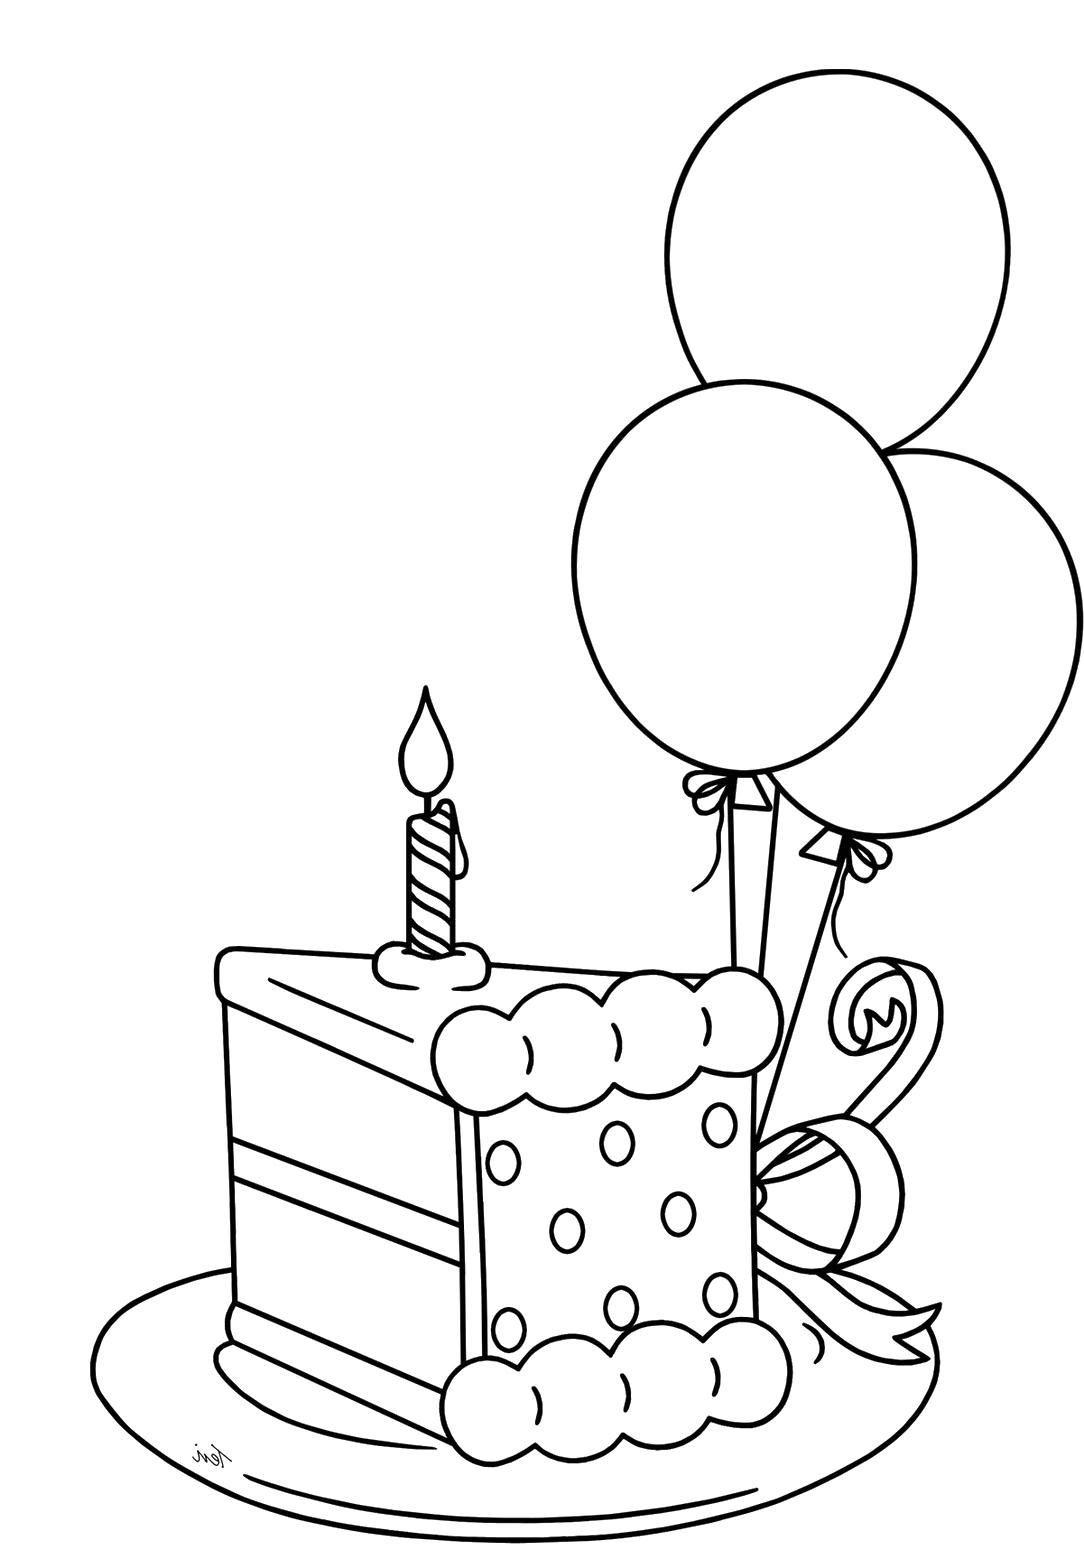 simple birthday cake drawing ; f88758d4e3861102244435dabf500cb0